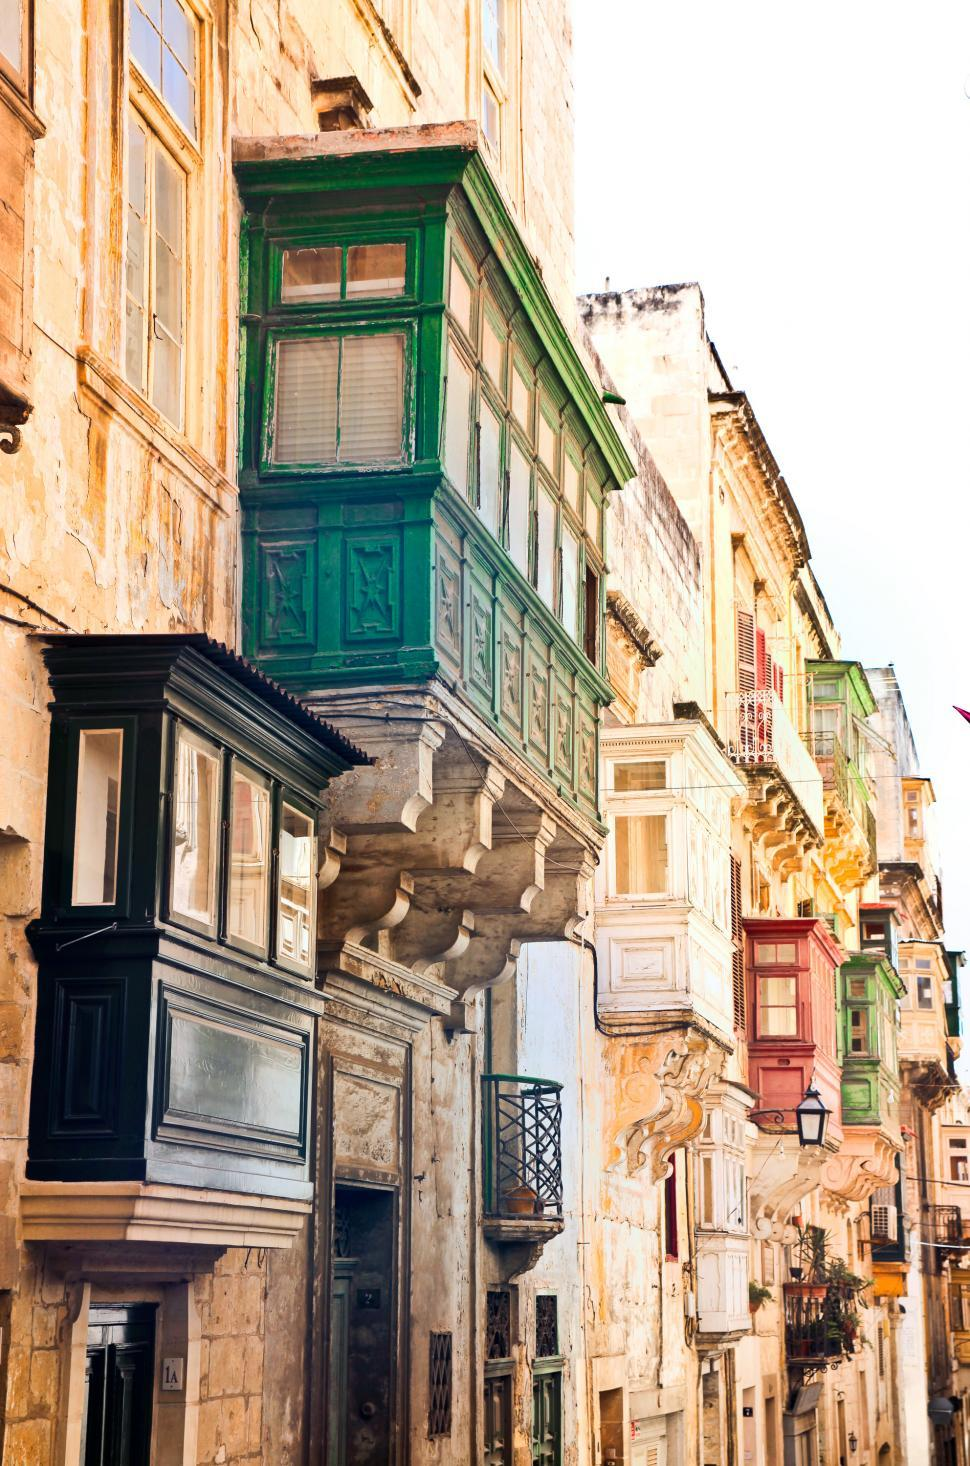 Download Free Stock HD Photo of View of Bow Windows in Valletta, Malta Online